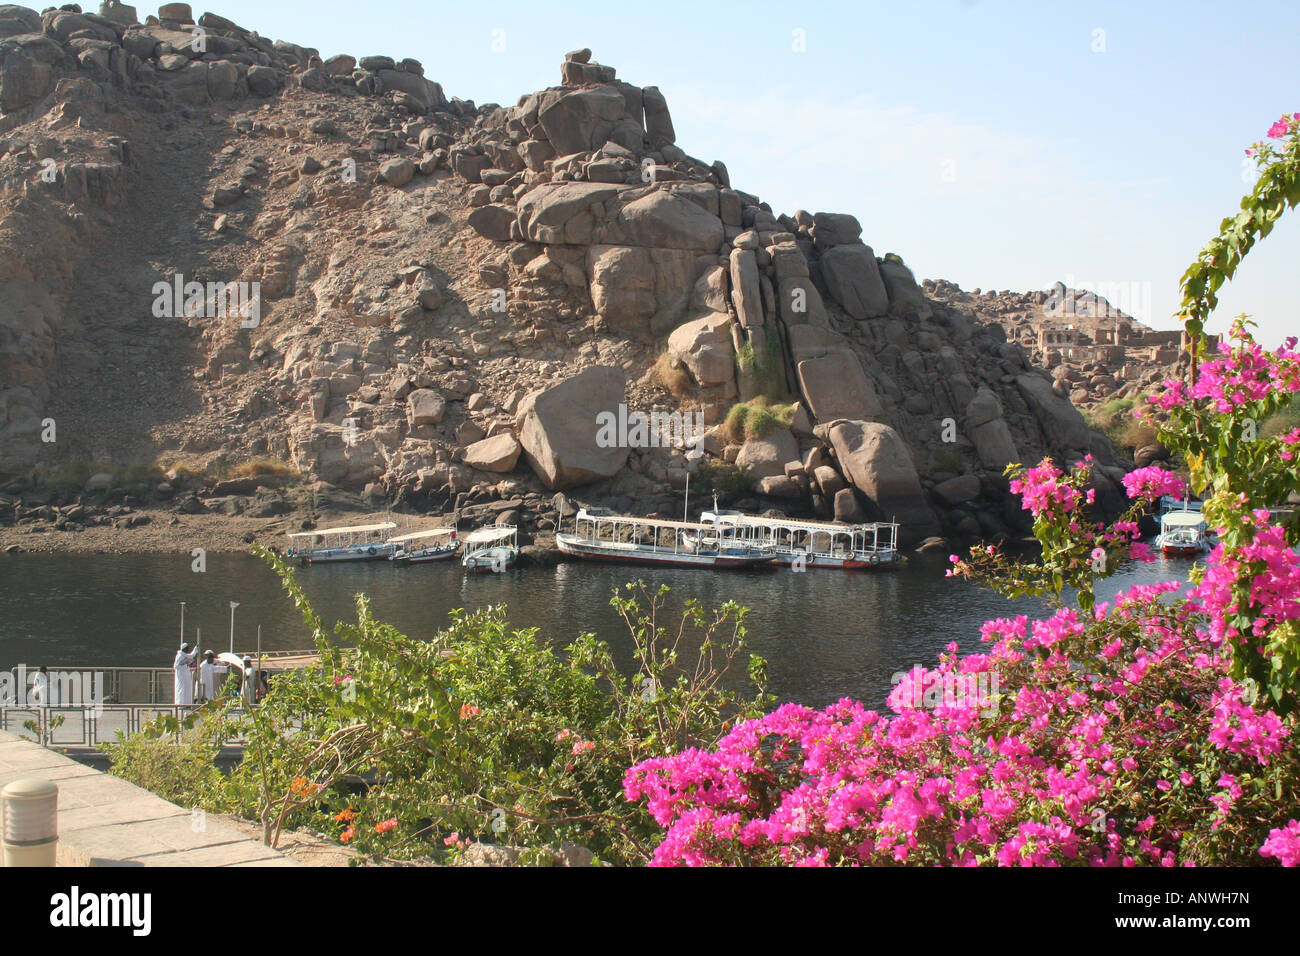 Felucca on the Water - View from Philae Temple [Agilkai Island, Near Aswan, Egypt, Arab States, Africa]. Stock Photo